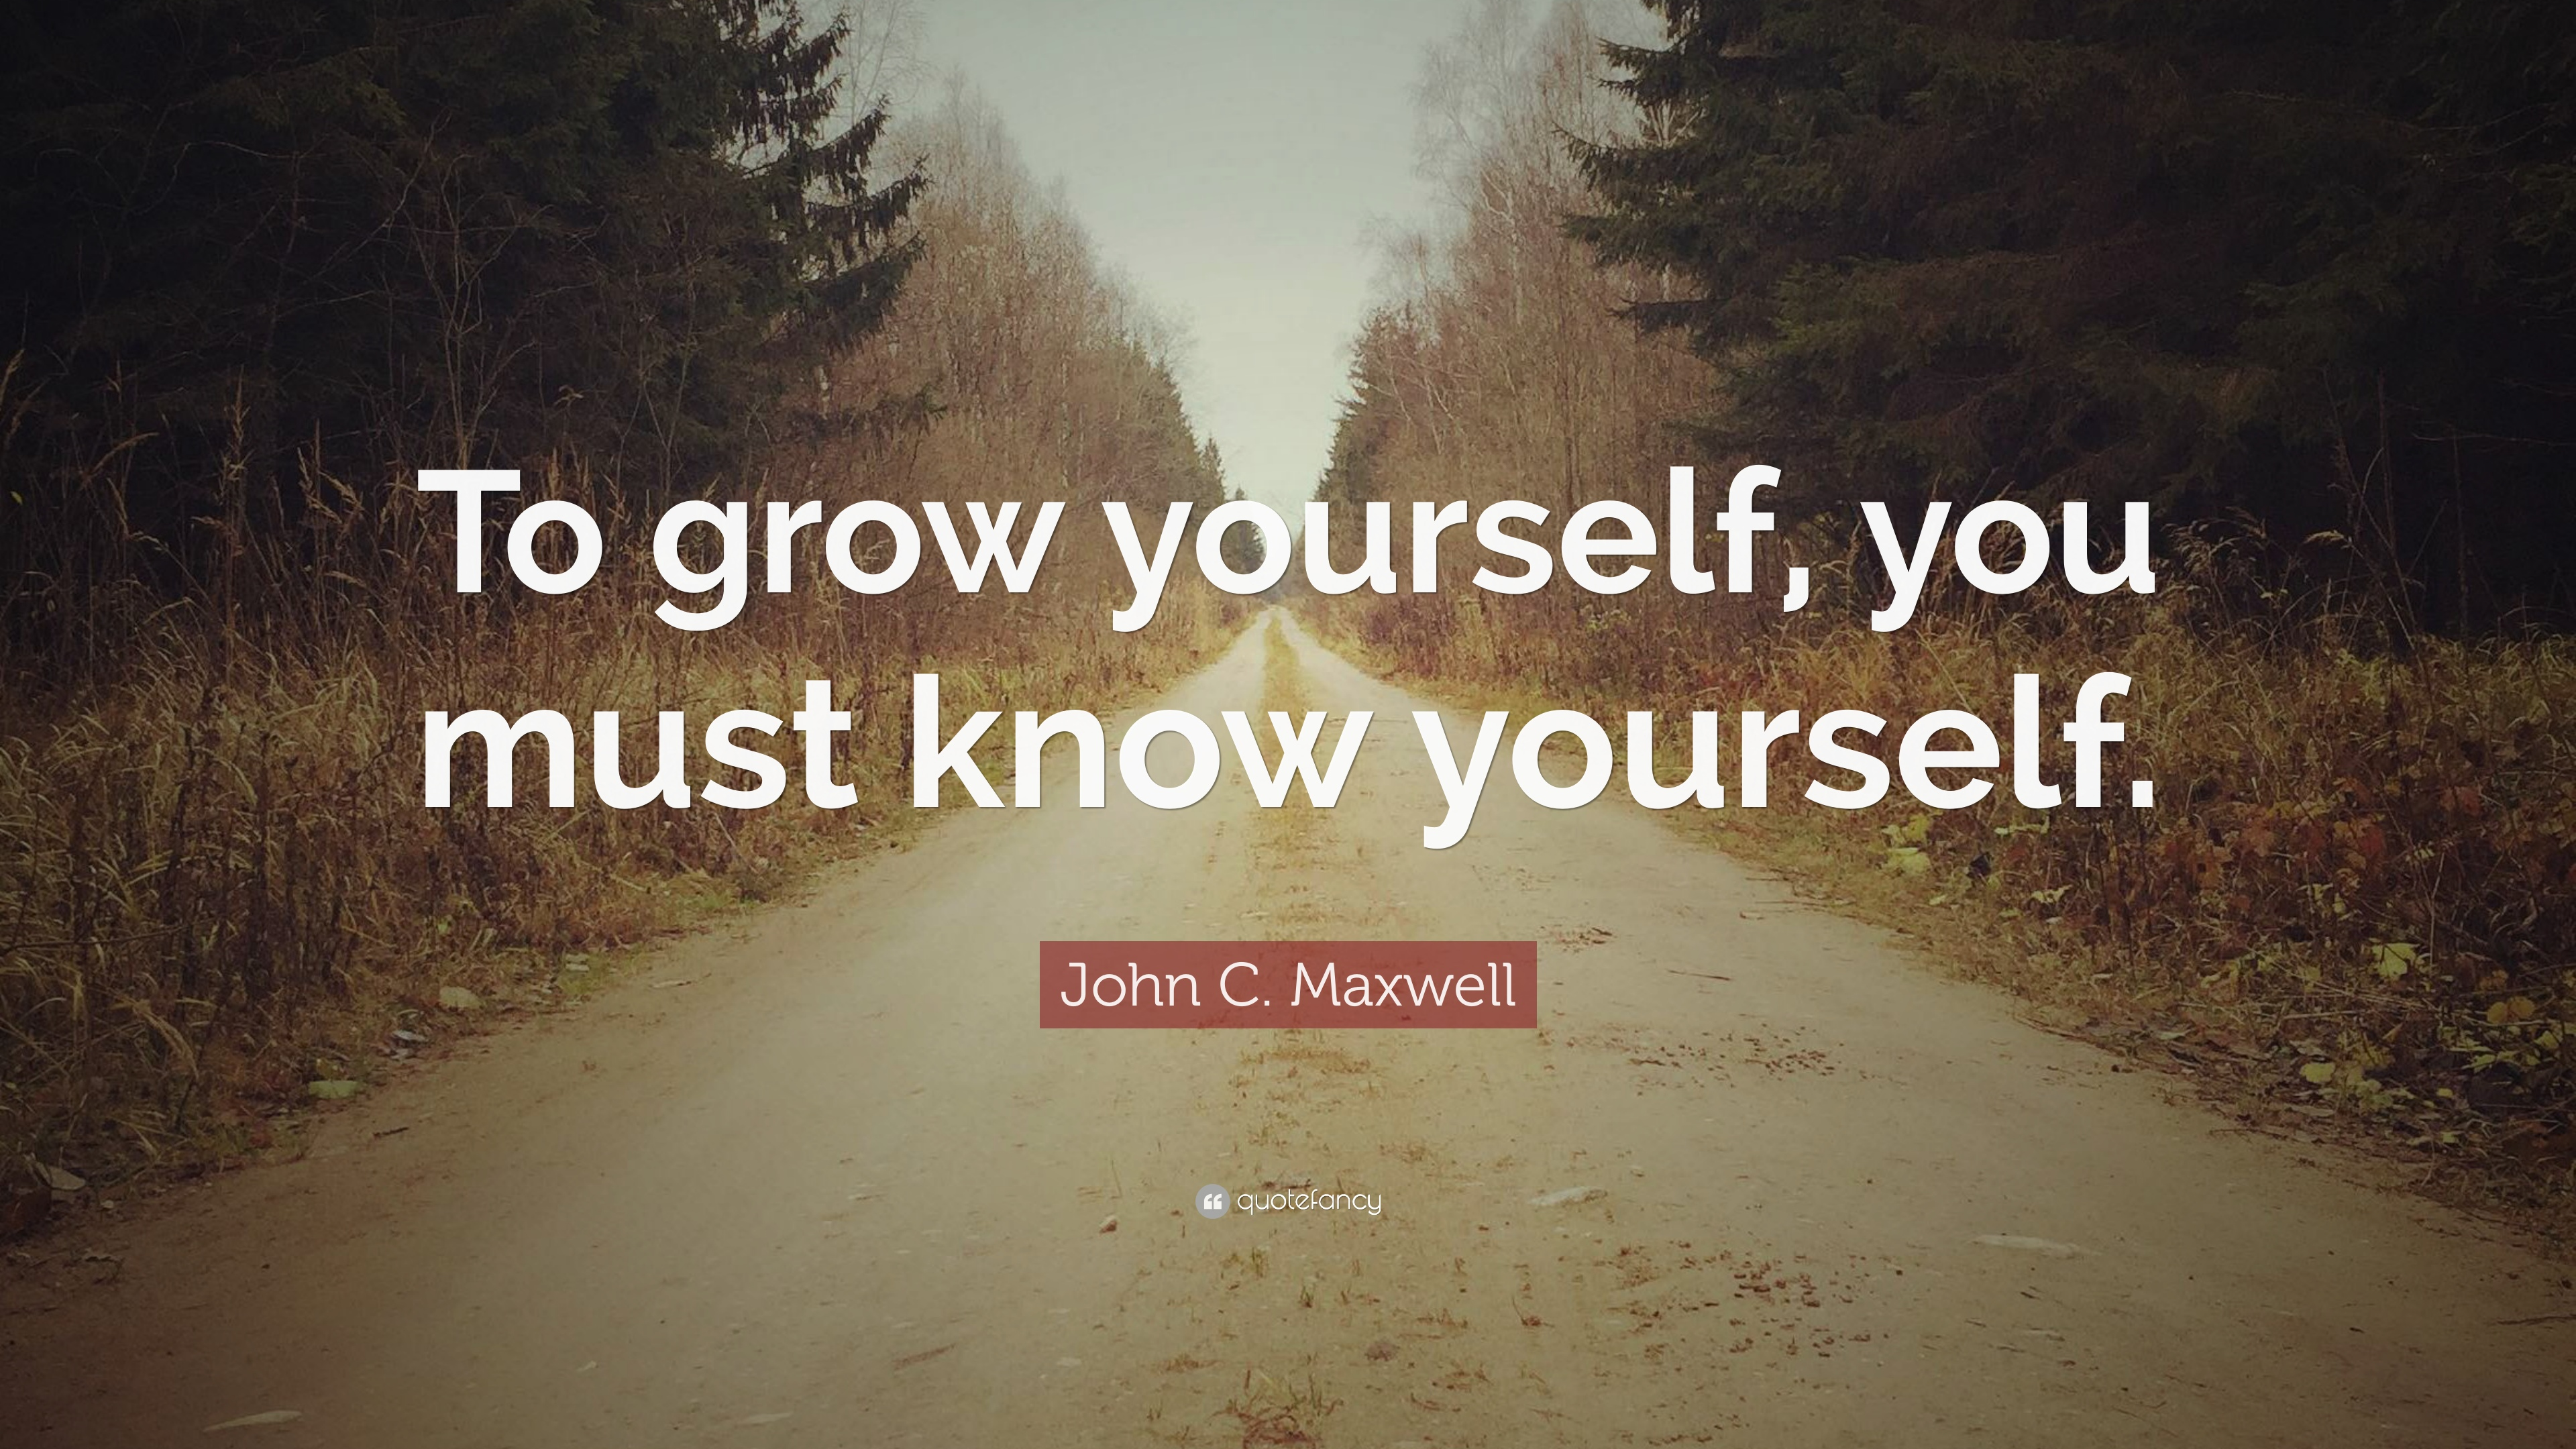 John C Maxwell Quote To Grow Yourself You Must Know Yourself 12 Wallpapers Quotefancy